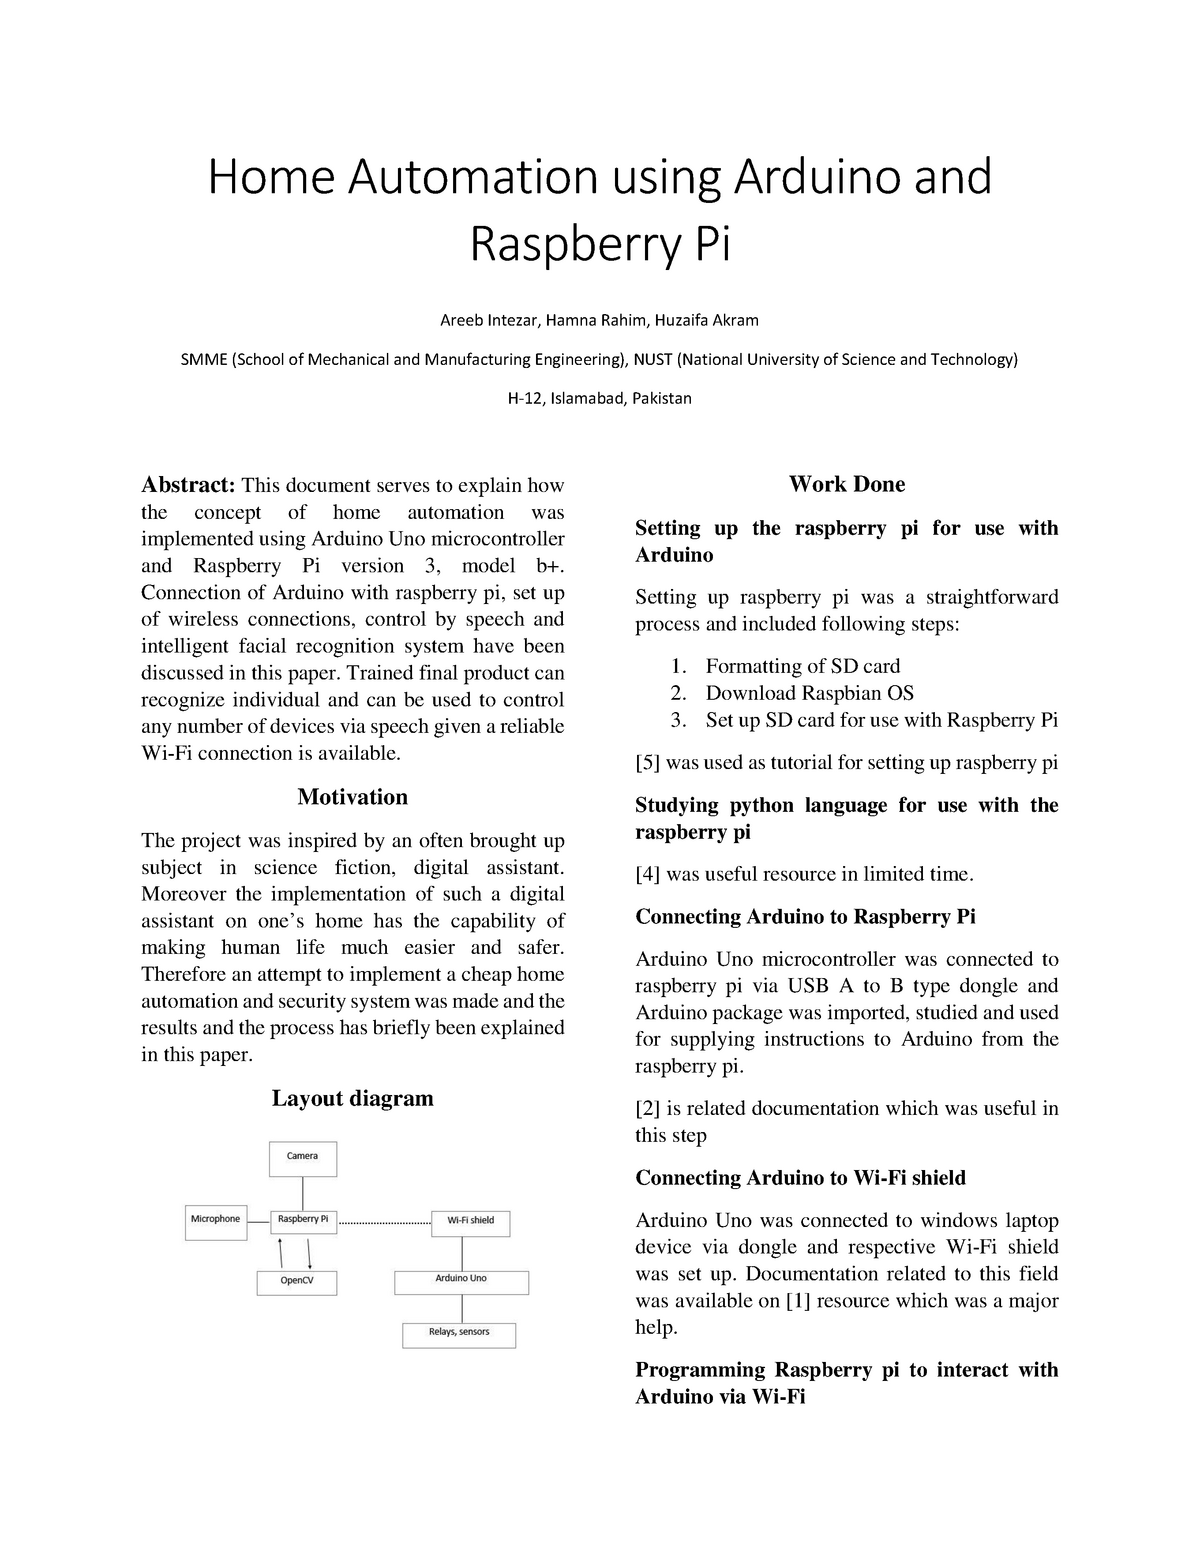 Home Automation using Arduino and Raspberry Pi - 112